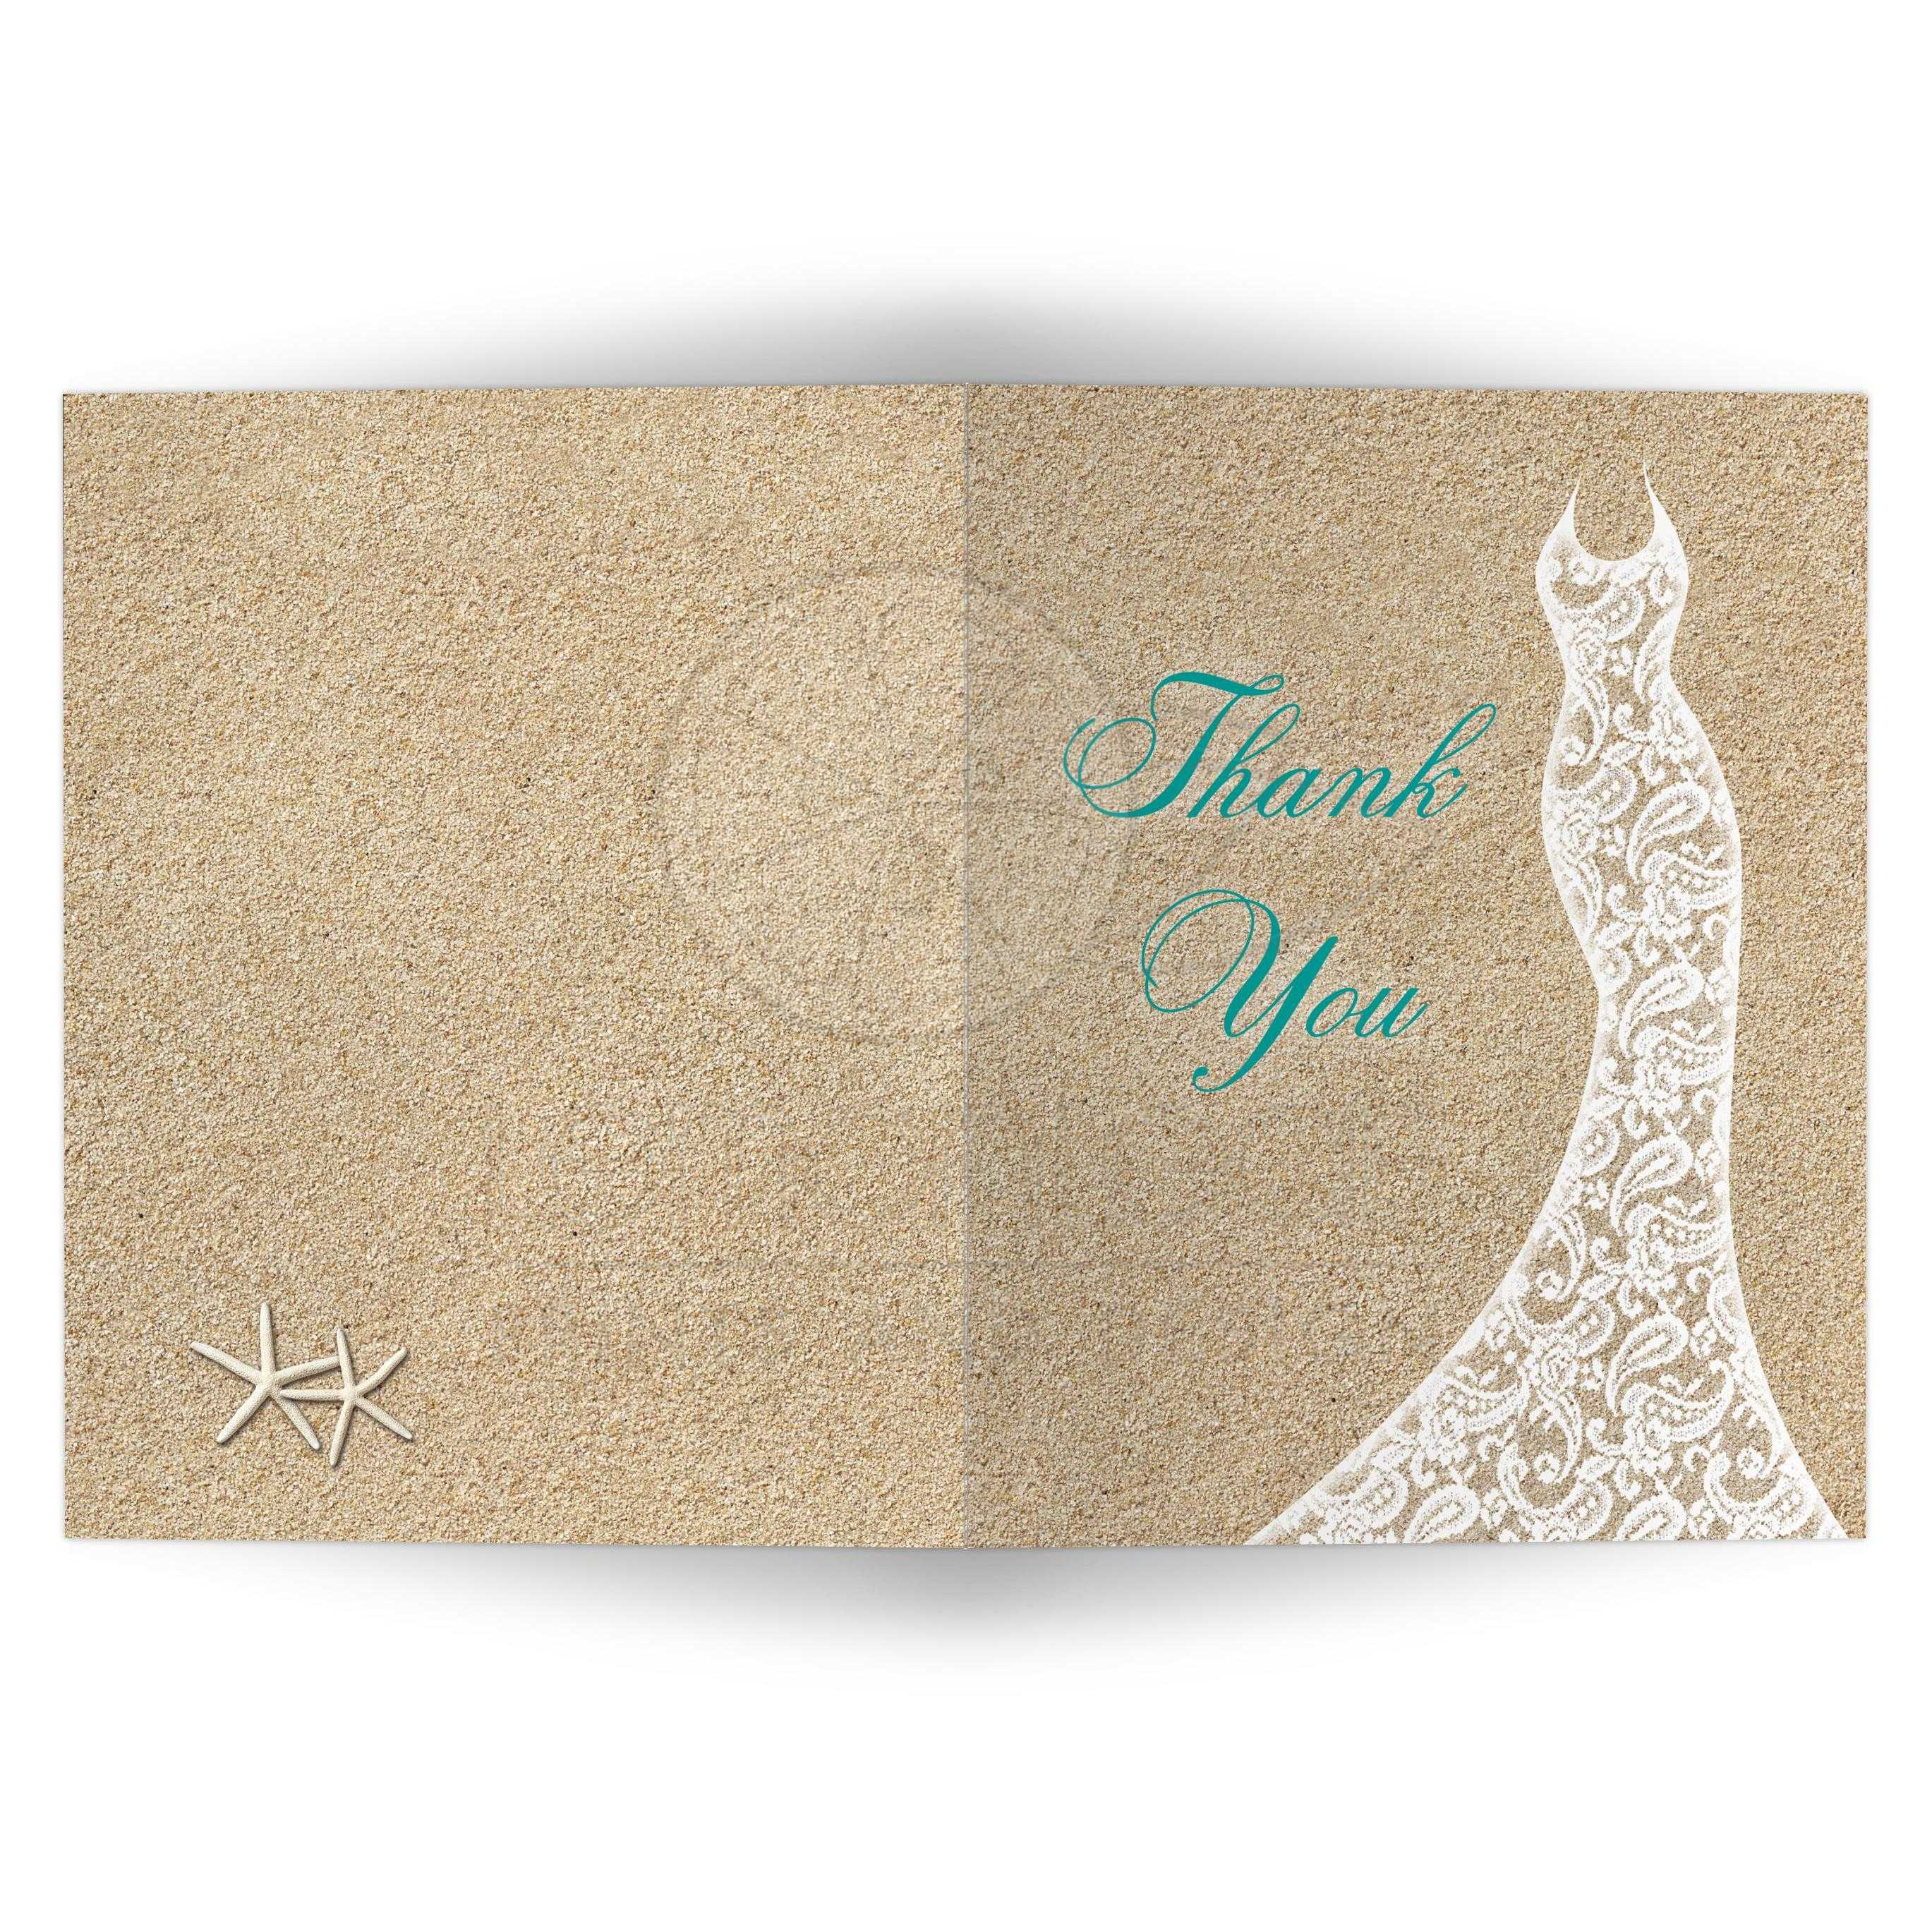 Exciting Beach Bridal Shower Thank You Card Turquoise Type Bridal Shower Thank You Card Beach Turquoise Vertical Bridal Shower Thank You Cards Samples Bridal Shower Thank You Cards Cheap bridal shower Bridal Shower Thank You Cards